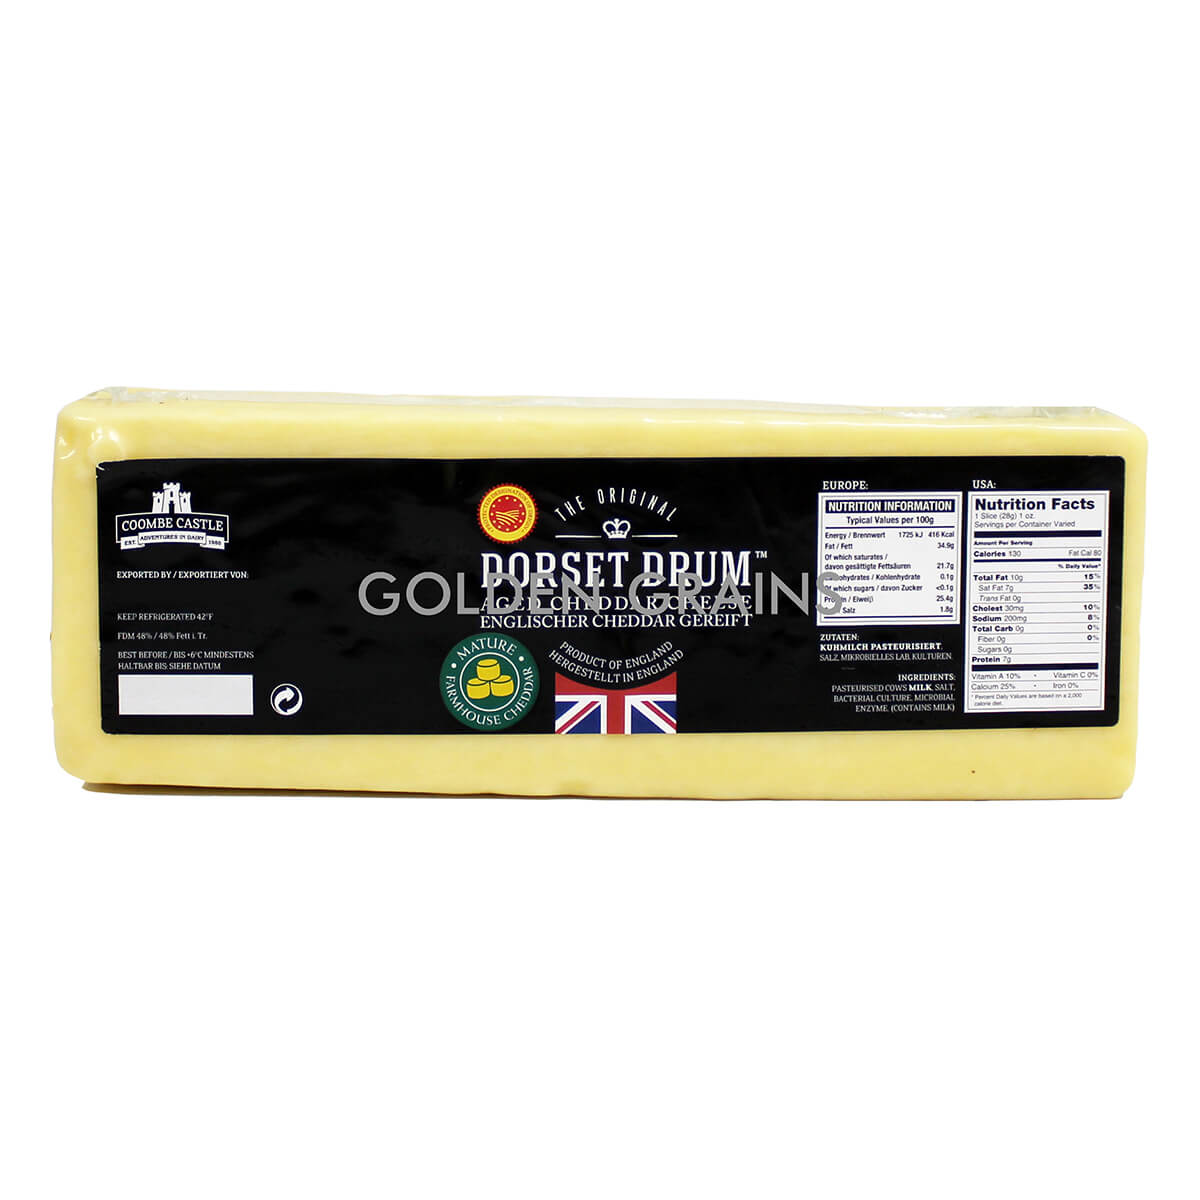 Golden Grains Dubai Export - Coombe Castle - Aged Cheddar Cheese - Front.jpg